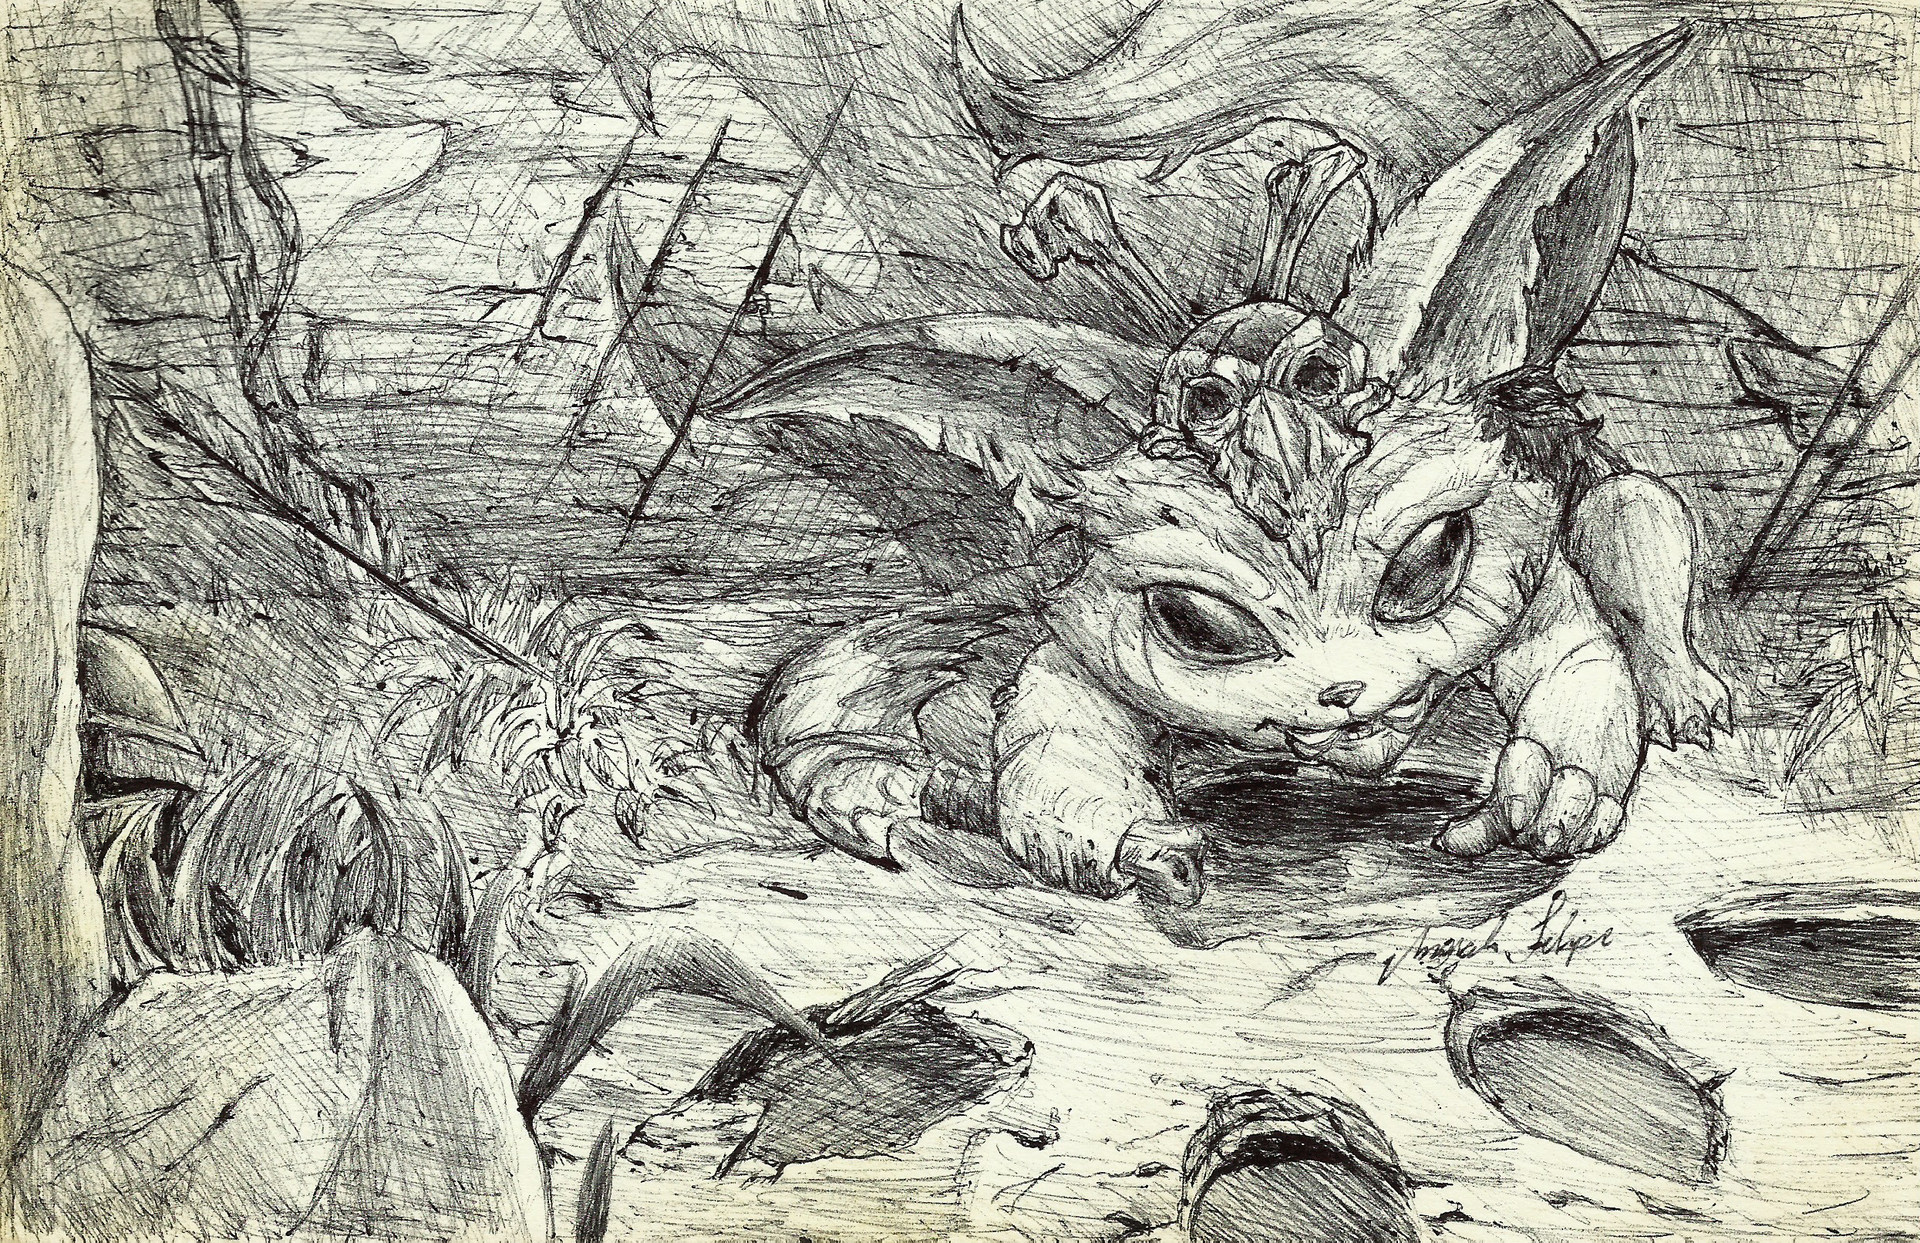 Marcelo Felipe Pereira Borges Gnar Sketch From League Of Legends Here presented 54+ league of legends drawing images for free to download, print or share. marcelo felipe pereira borges gnar